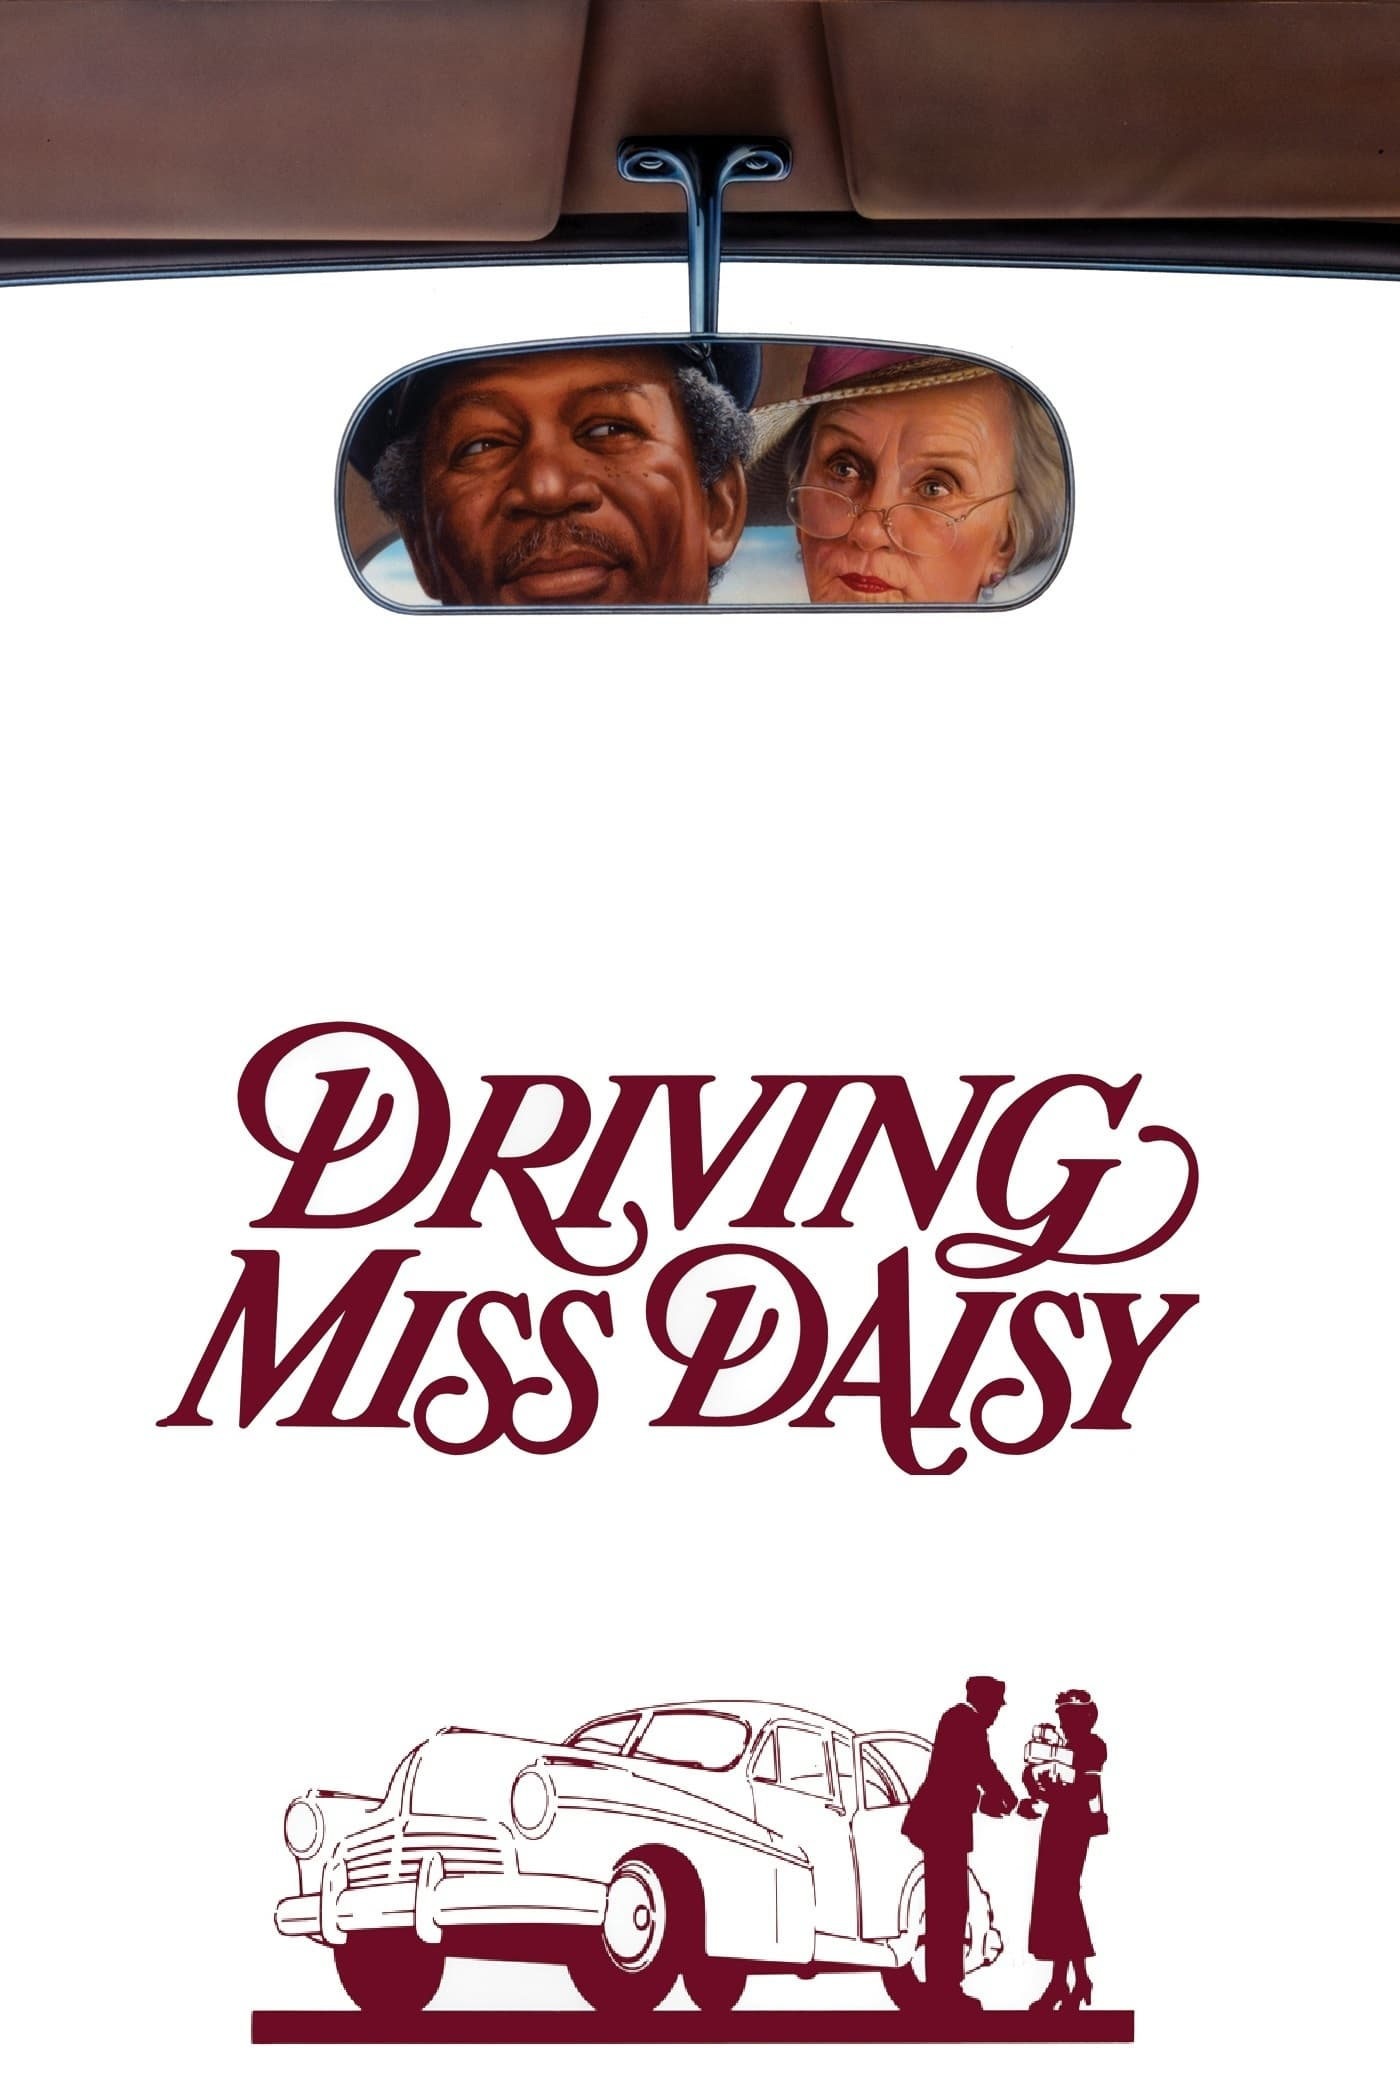 driving miss daisy essay The play driving miss daisy had its new york premiere on april 15, 1987, off broadway at the studio theater at playwrights horizons written by alfred uhry and directed by ron lagomarsino, the.